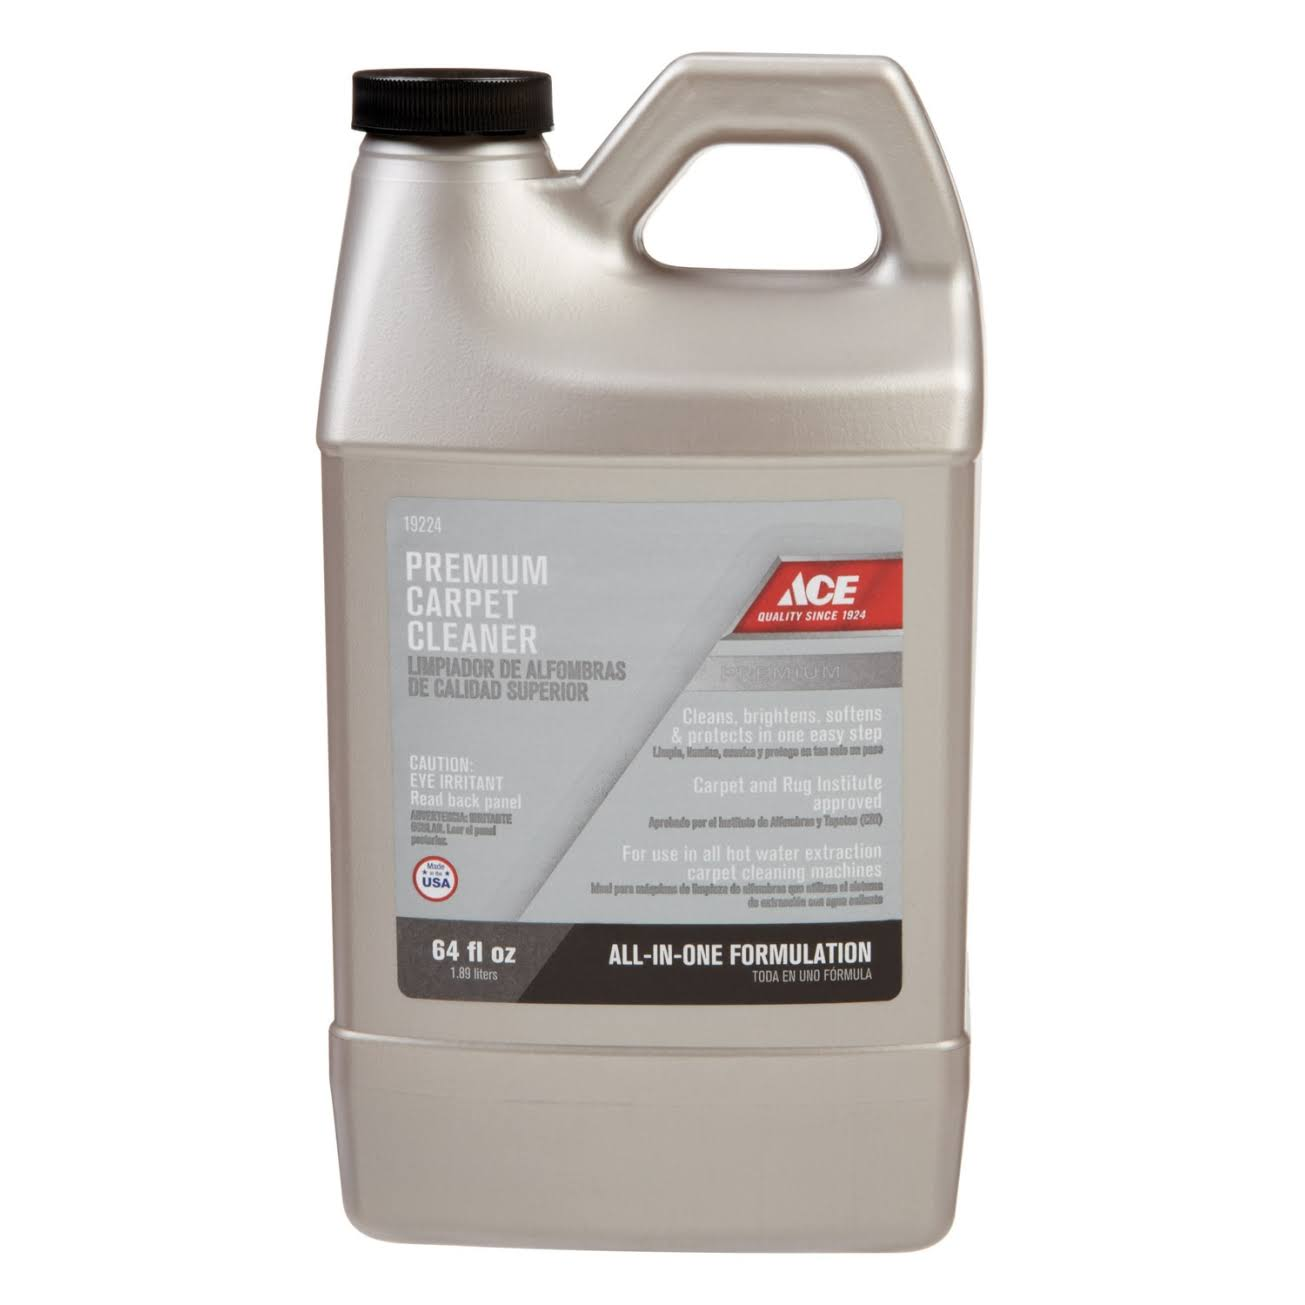 Ace 6-in-1 Carpet Cleaner - 1/2 Gal